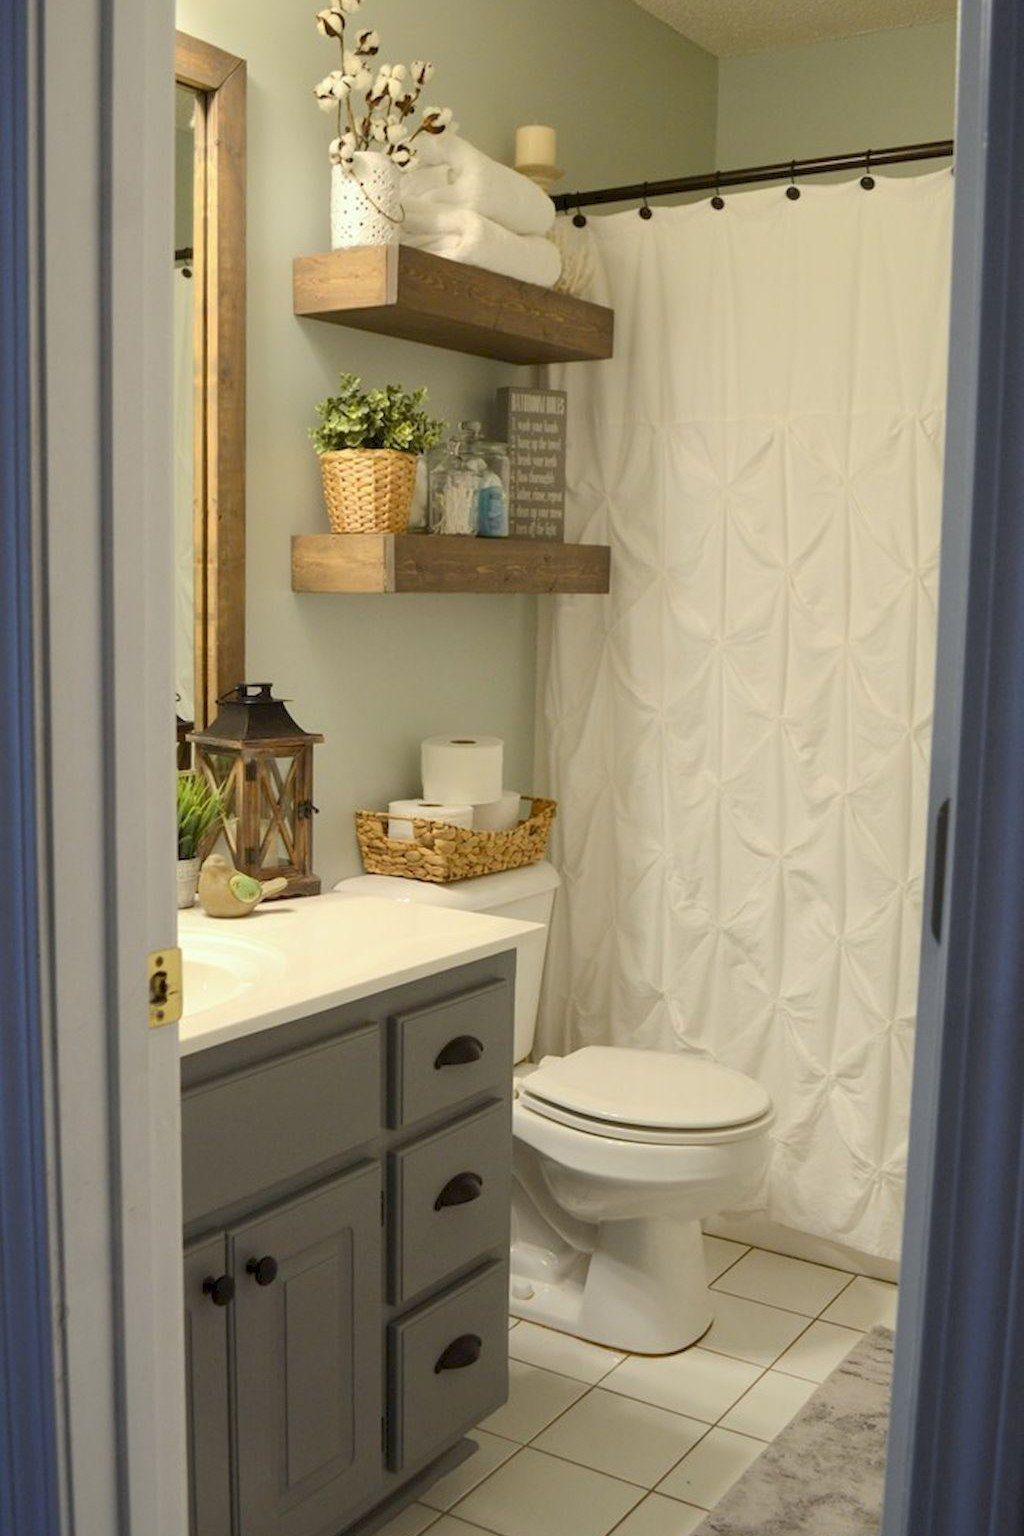 Bathroom Decor. Make a splash with your own bathroom furnishings by ...